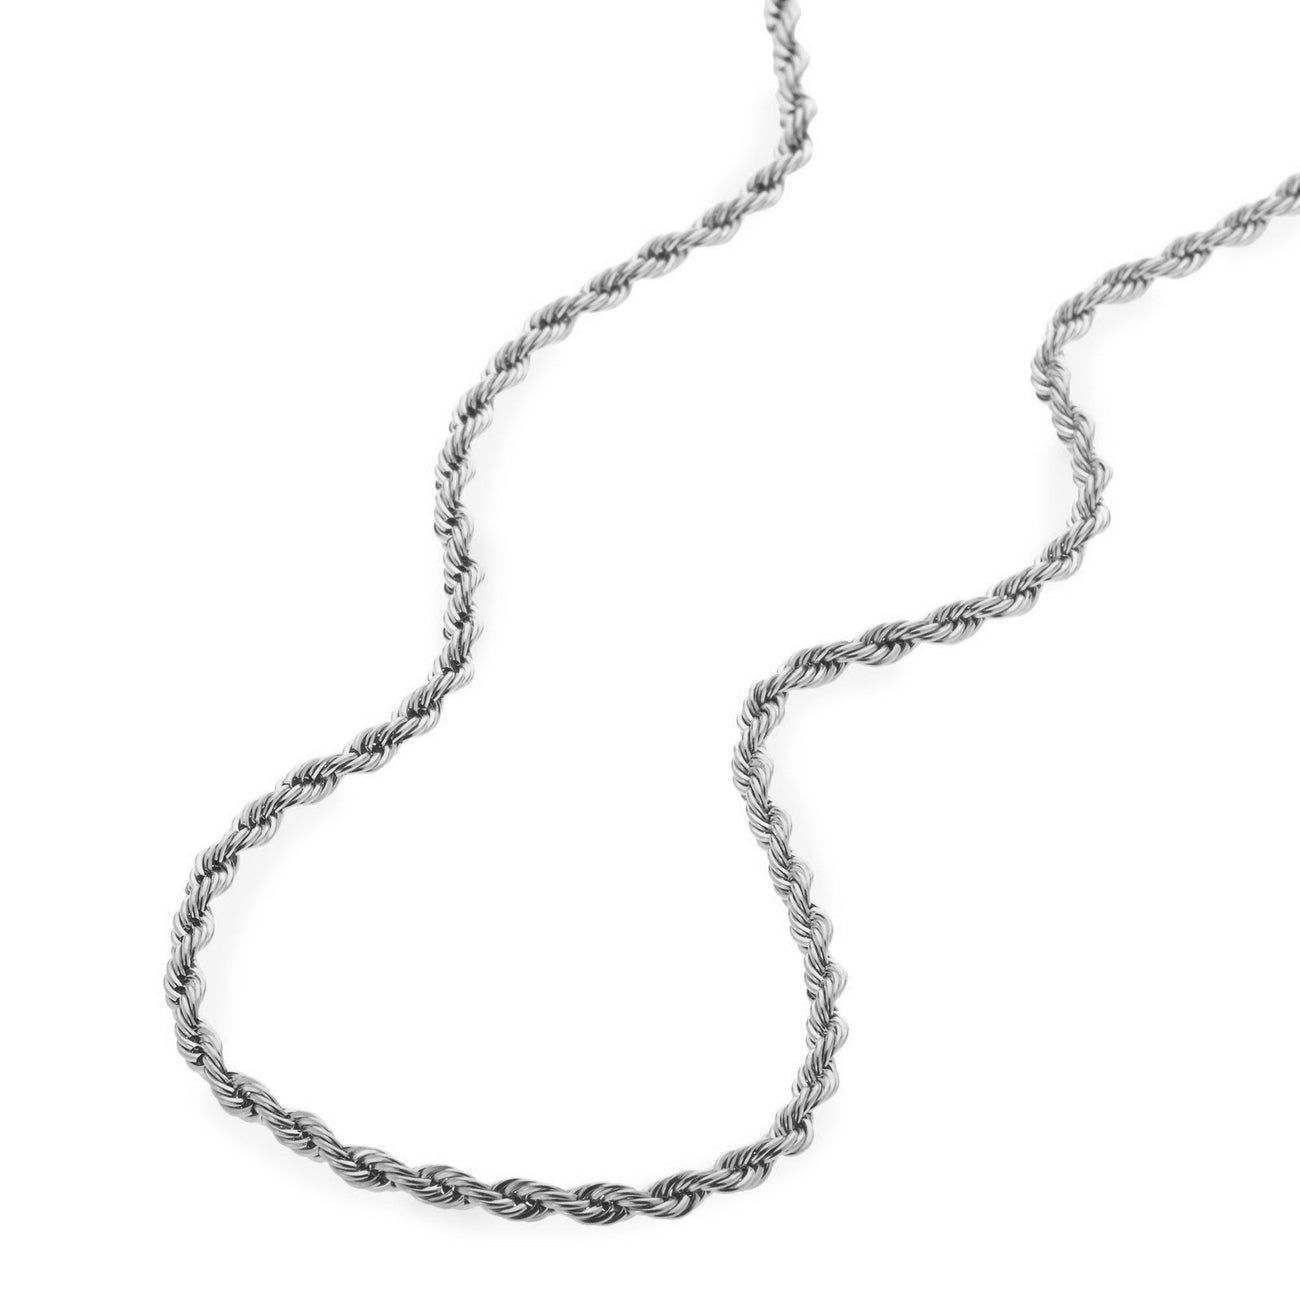 Chains - 3mm Stainless Steel Rope Chain